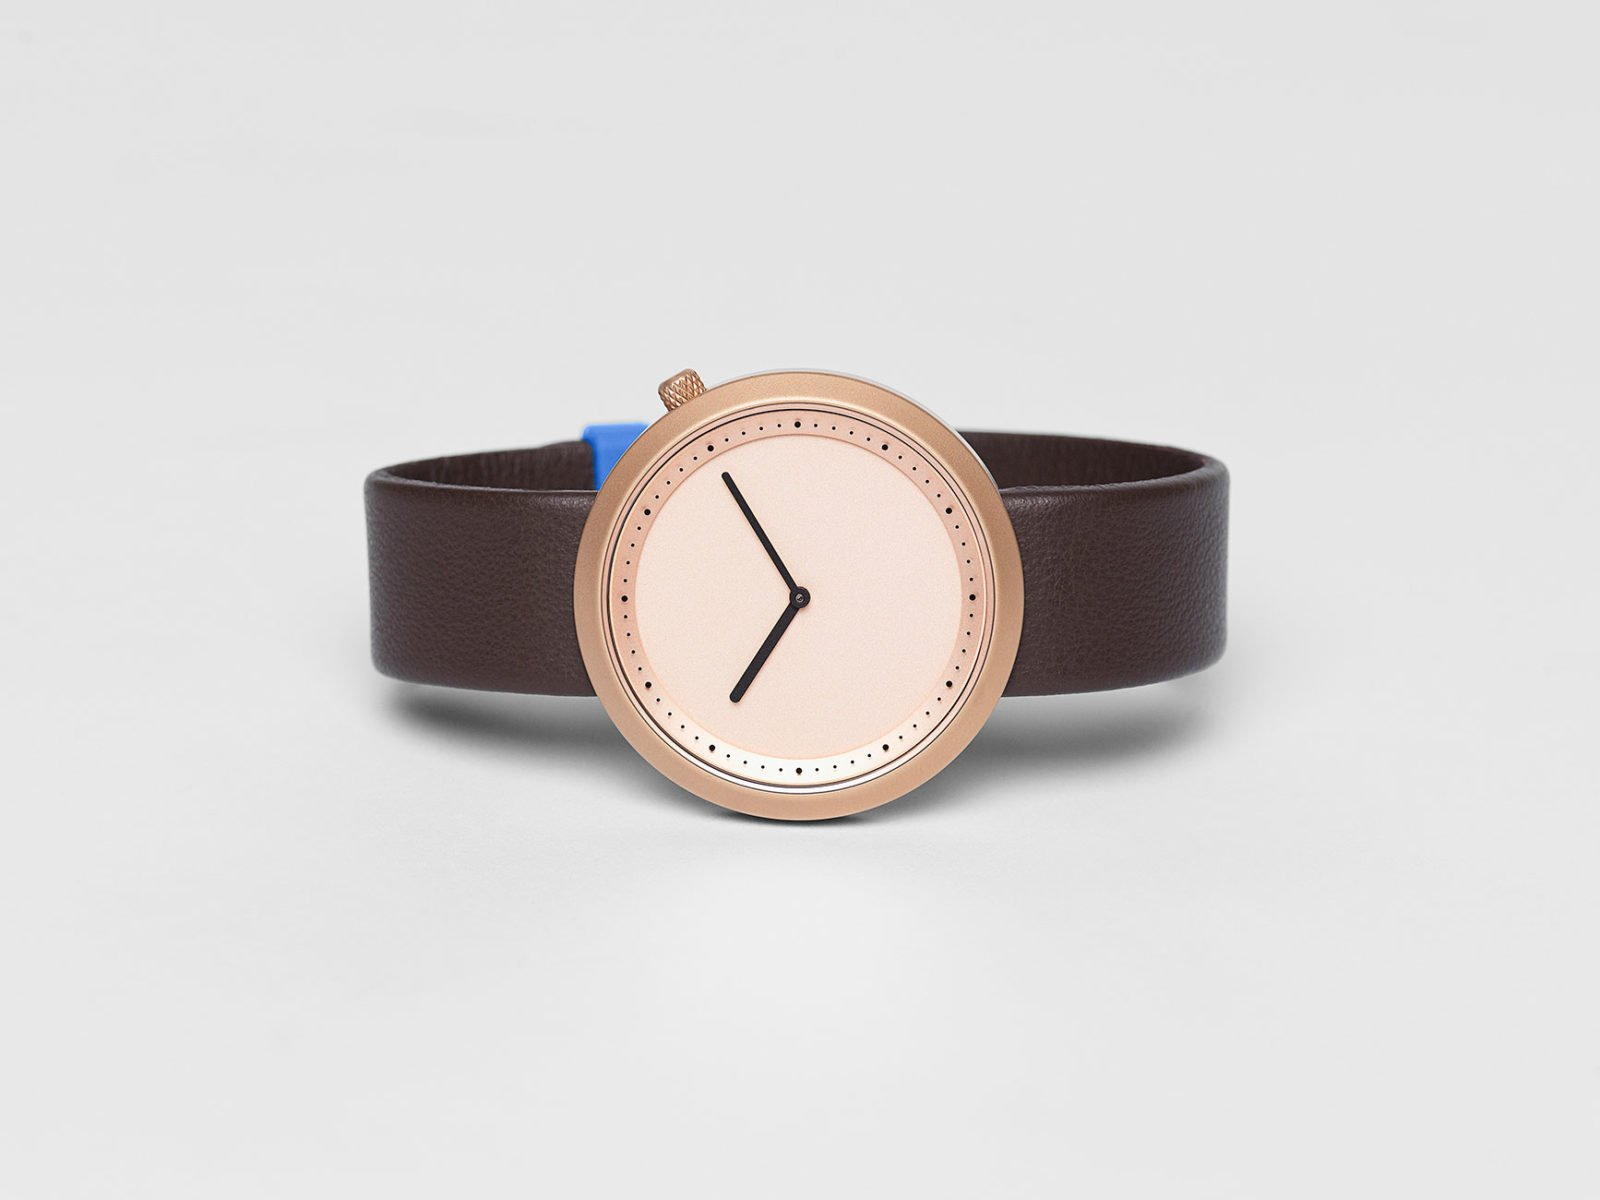 Facette 03 Watch by Bulbul -26663